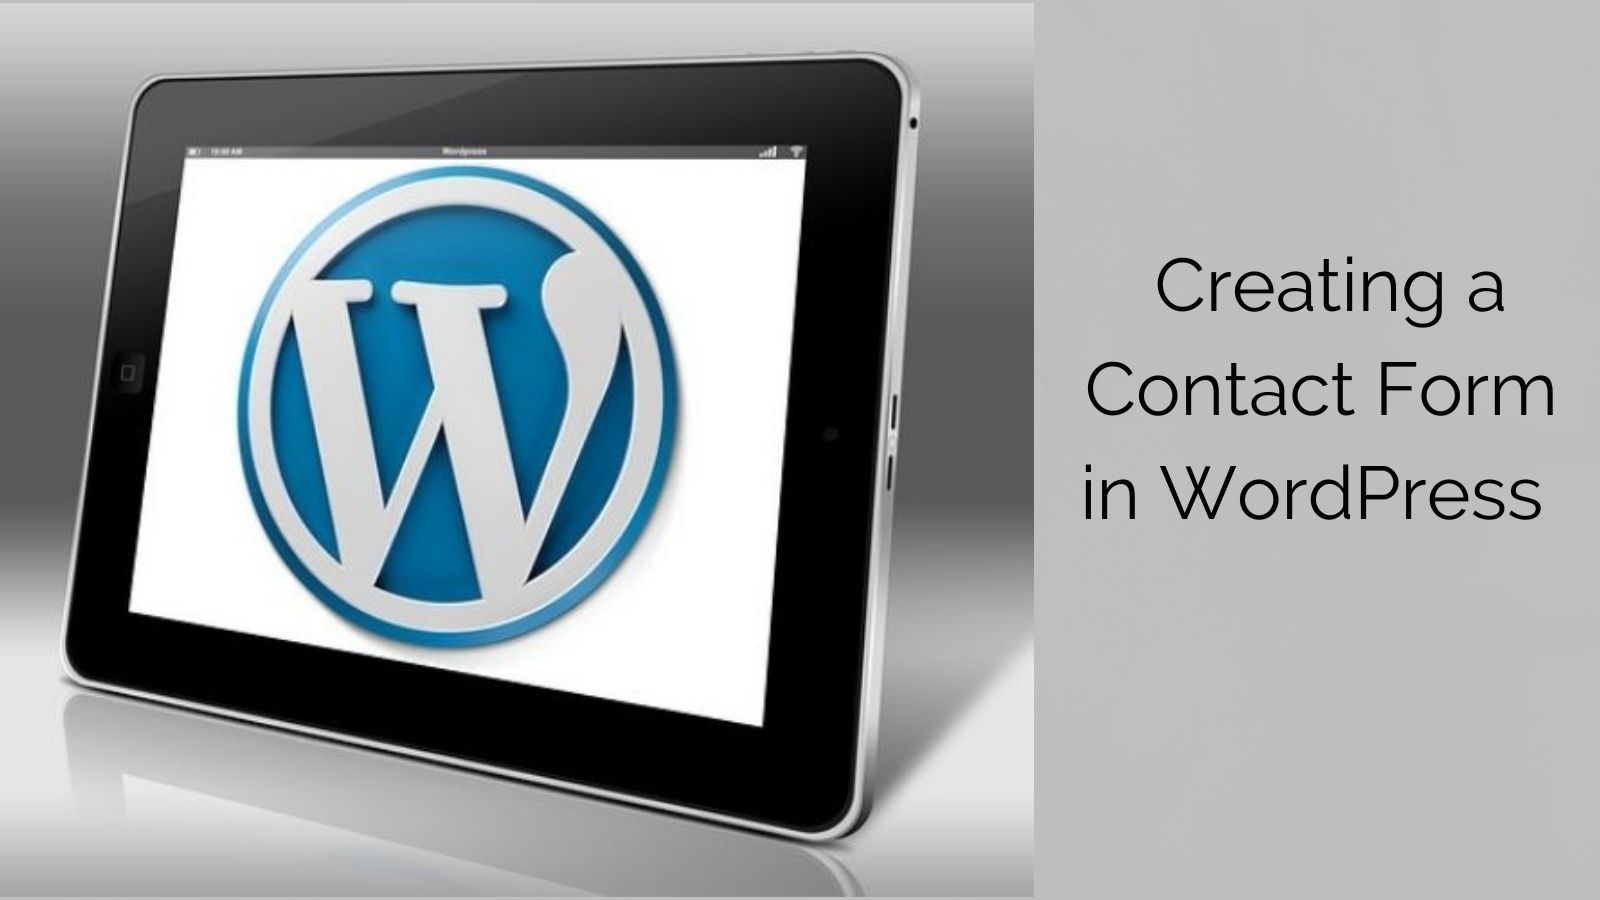 How To Create A Contact Form In WordPress Tutorial - WordPress Logo